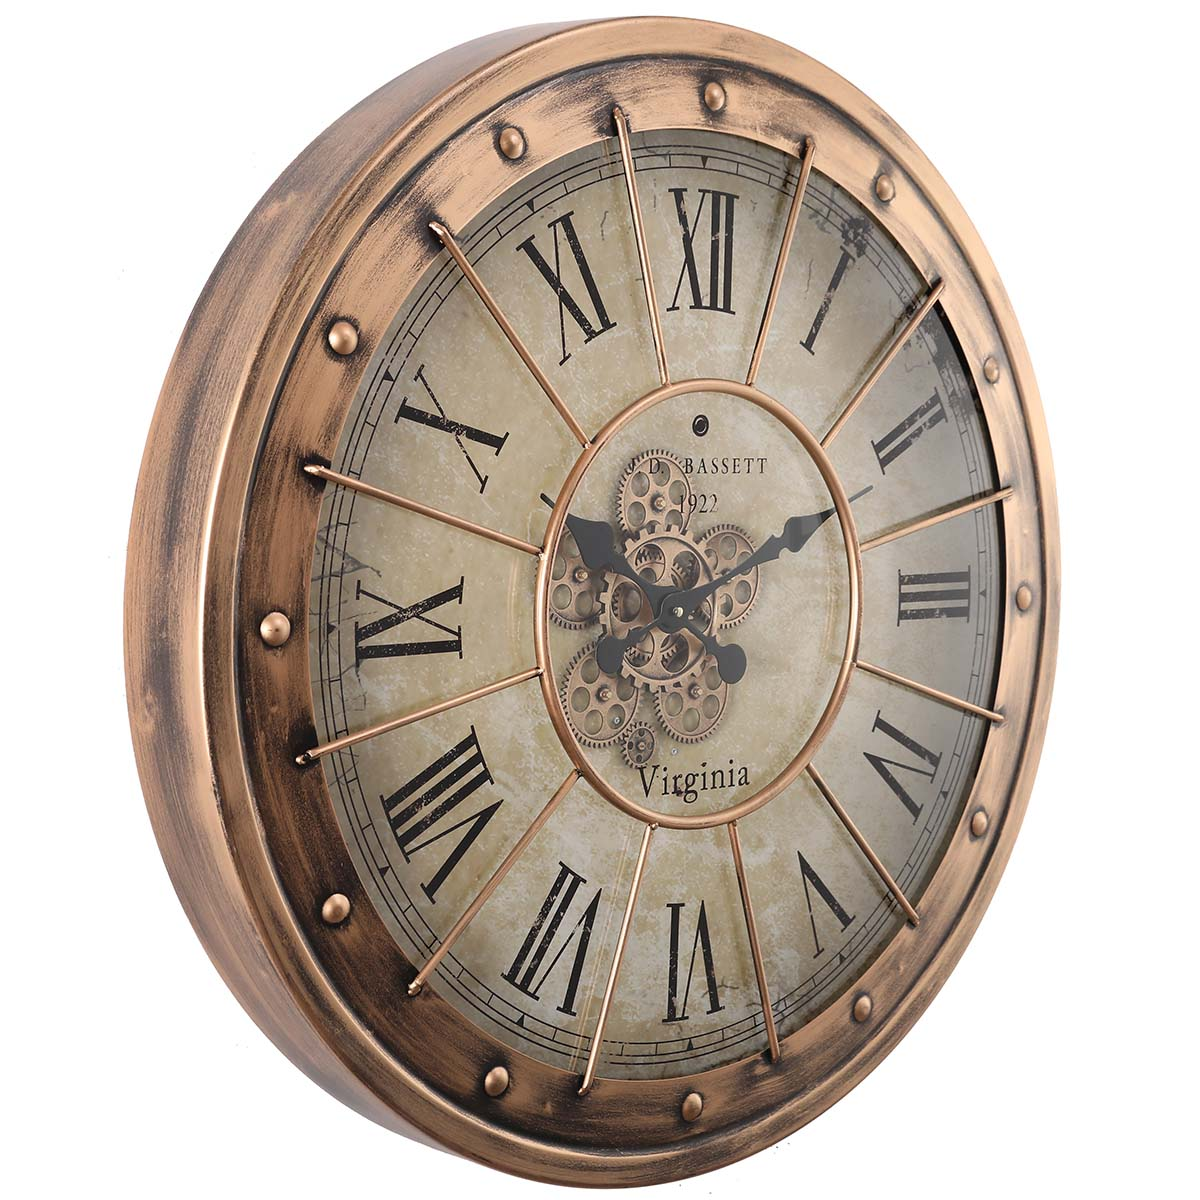 Chilli Decor JD Basset Industrial Metal Moving Gears Wall Clock Copper Wash 80cm TQ-Y670 1